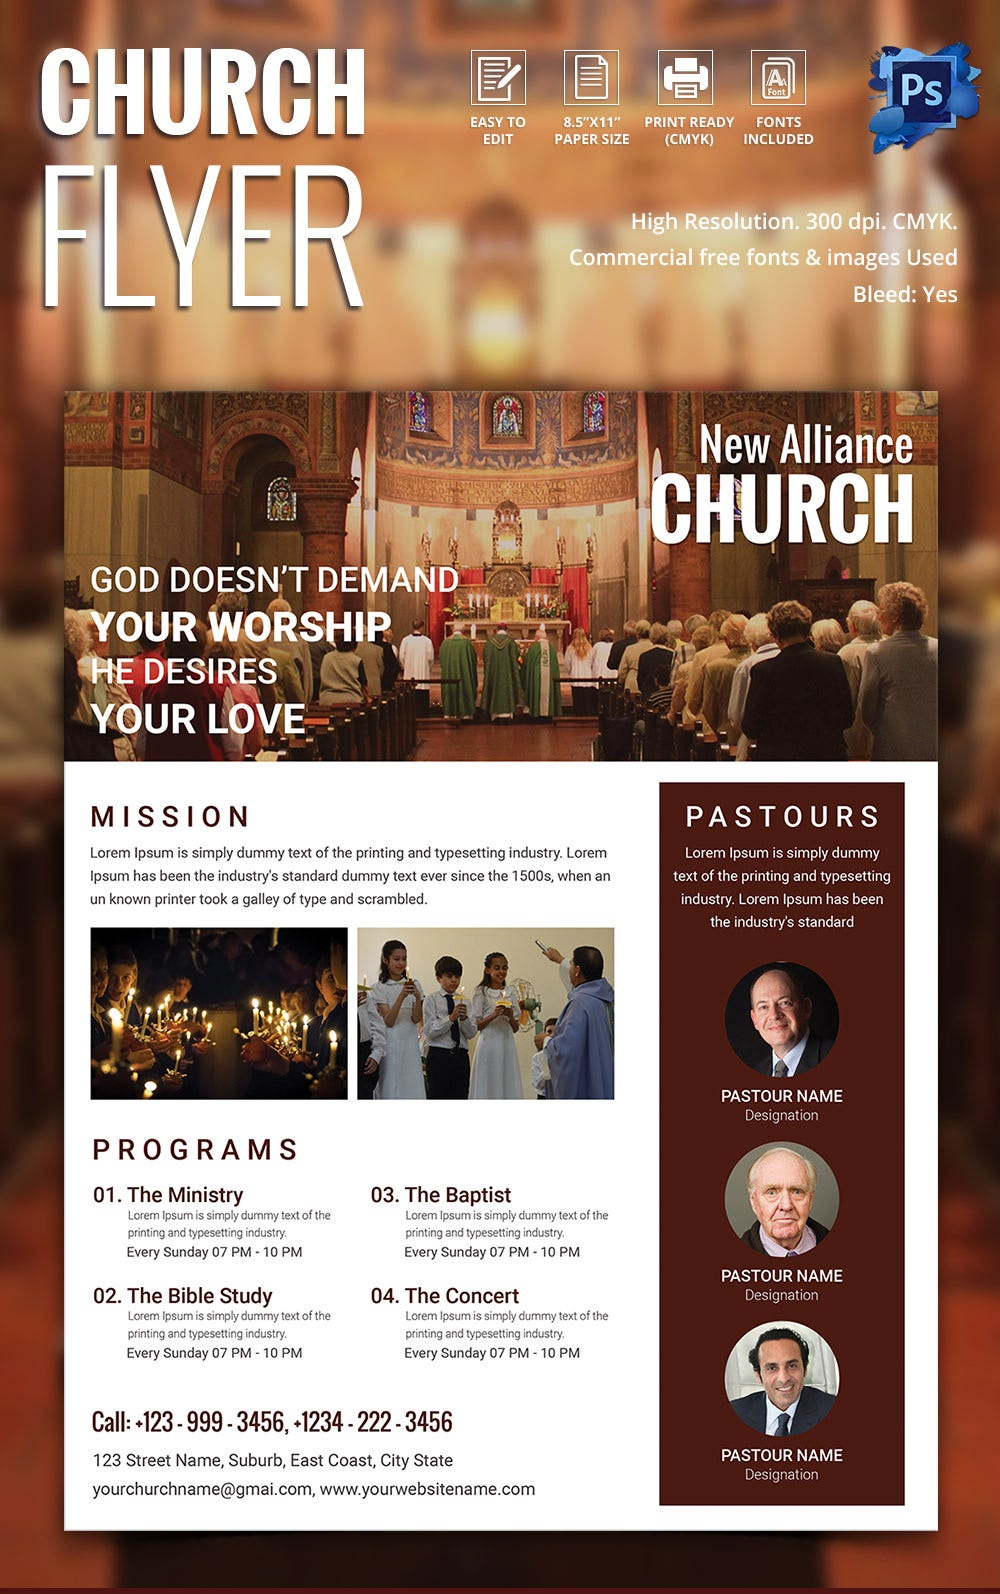 free flyer templates for church events - church flyers 26 free psd ai vector eps format